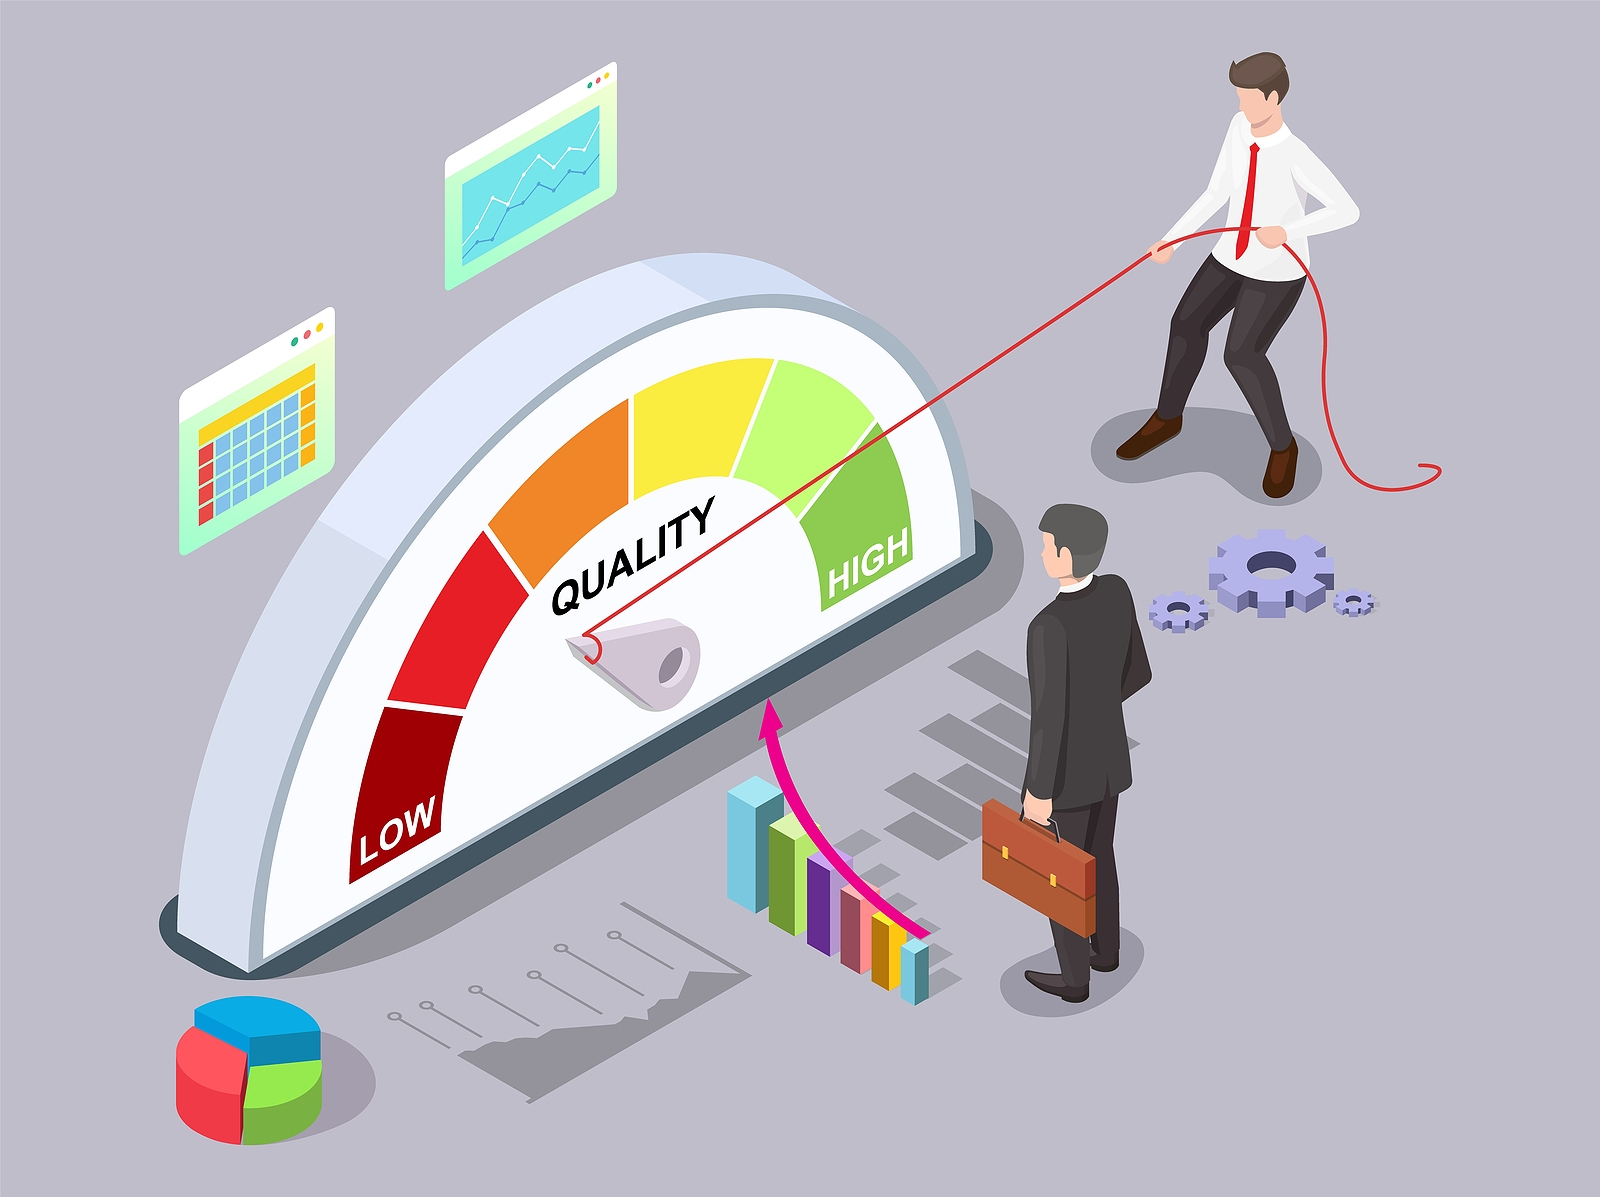 Total Quality Management: Making the Most of What You Have